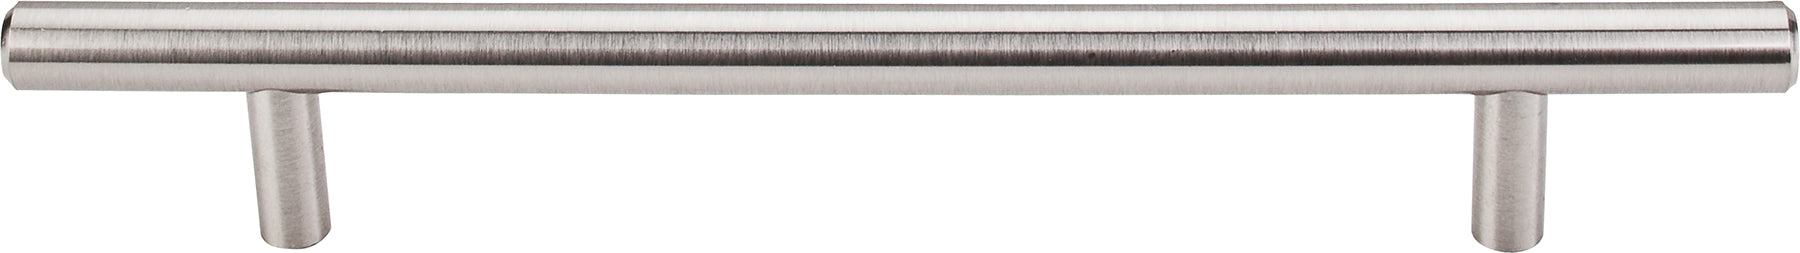 "6-5/16"" Hopewell Bar Pull Brushed Satin Nickel"